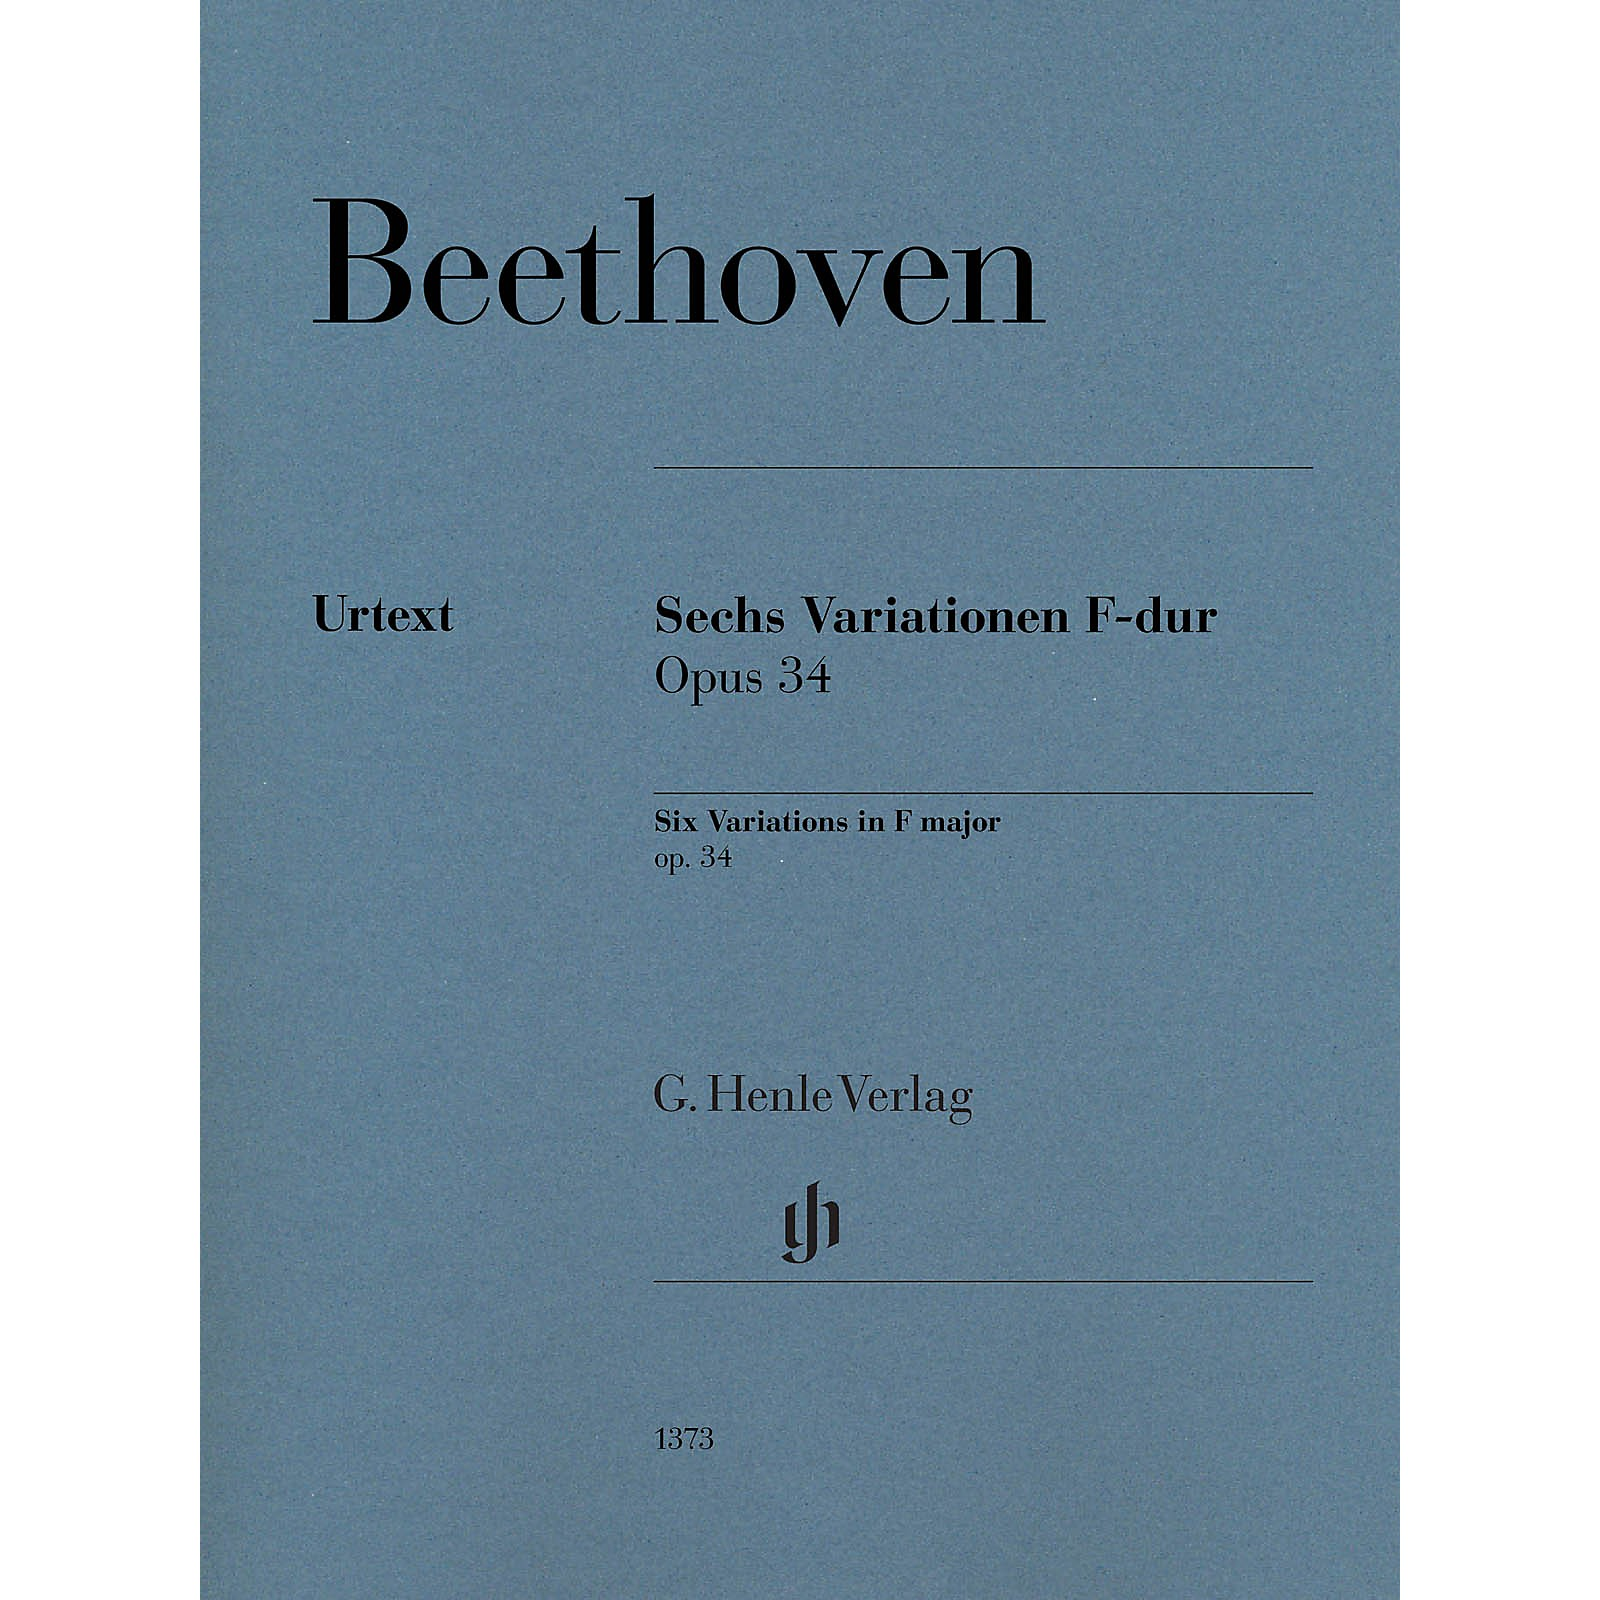 G. Henle Verlag Six Variations in F Major Op. 34 for Piano Solo by Ludwig van Beethoven Edited by Felix Loy